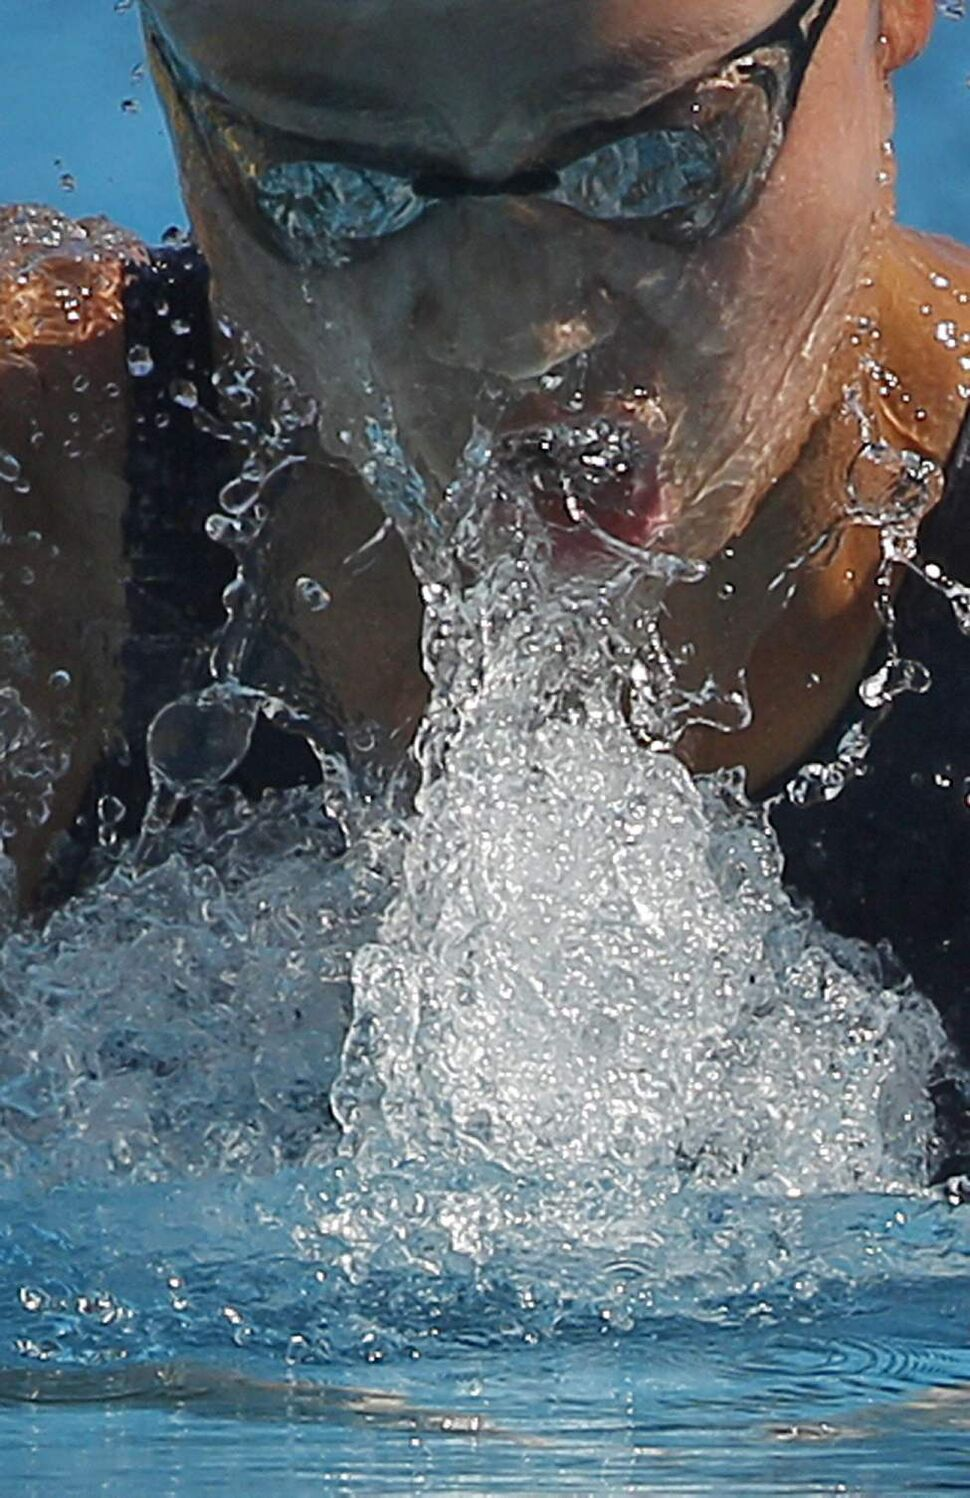 Japan's Kanako Watanabe swims during a women's 100mt breaststroke final at the Settecolli Swimming Trophy, in Rome, Thursday, June 14, 2012.  (Alessandra Tarantino / The Associated Press)